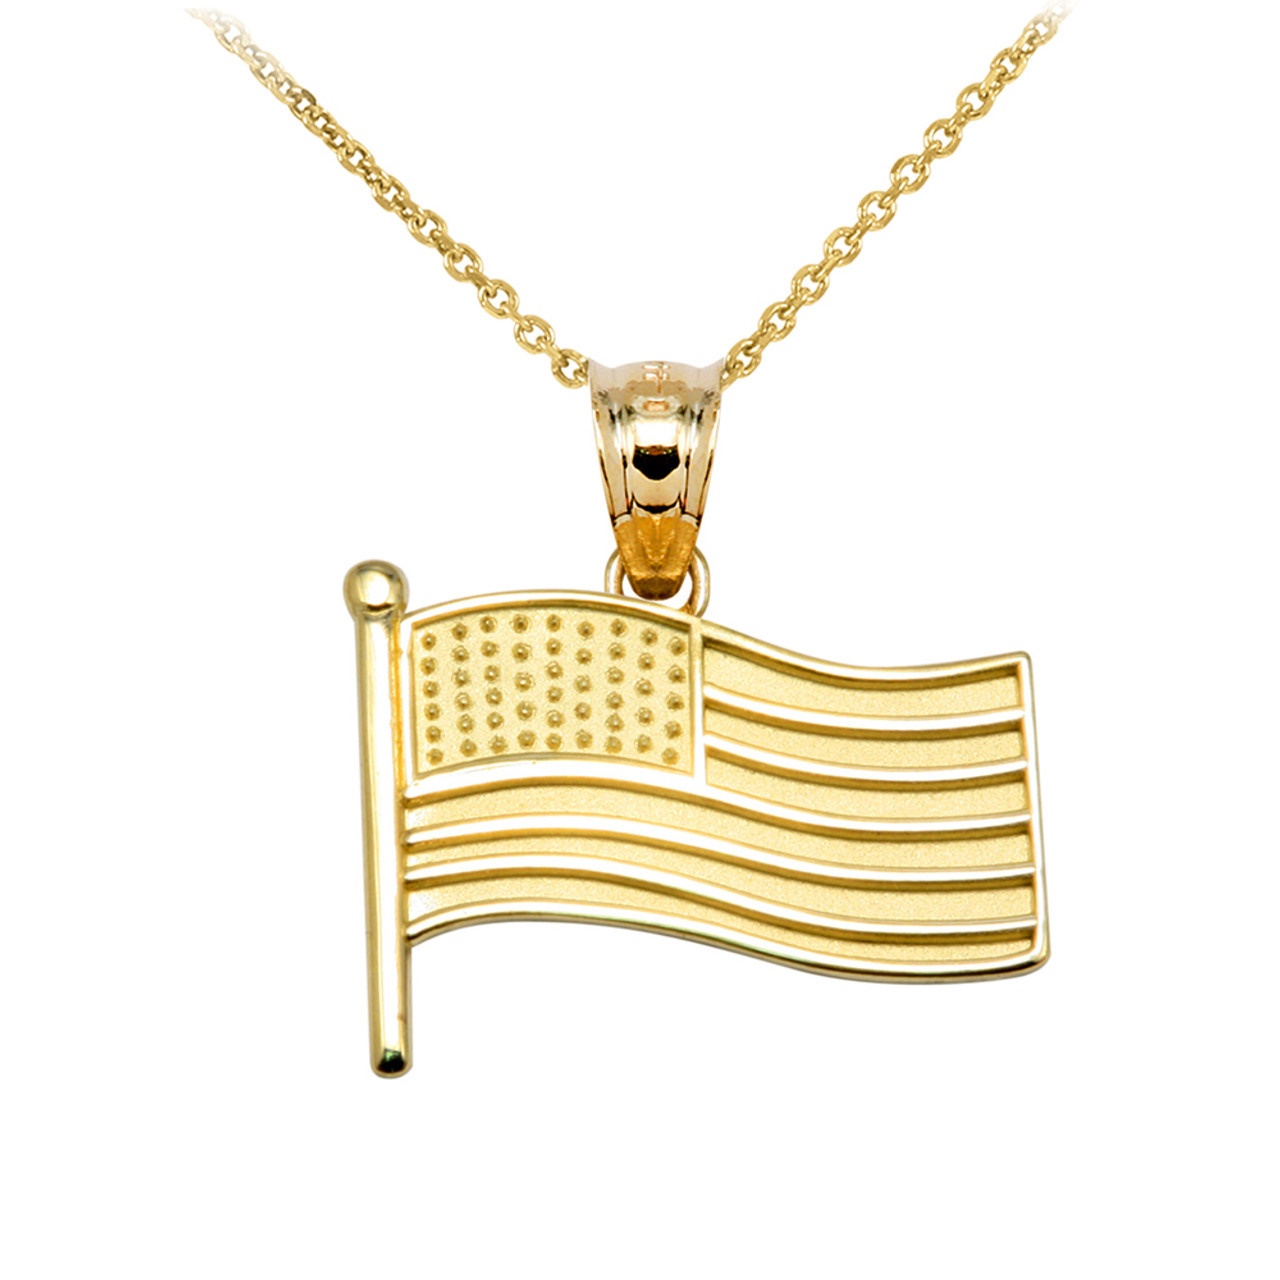 stripes men and usa product color gold jewelrygold gift patriot dog tag necklace pendant stainless necklacegiftmen freedom stars jewelry american flagusa steel flag